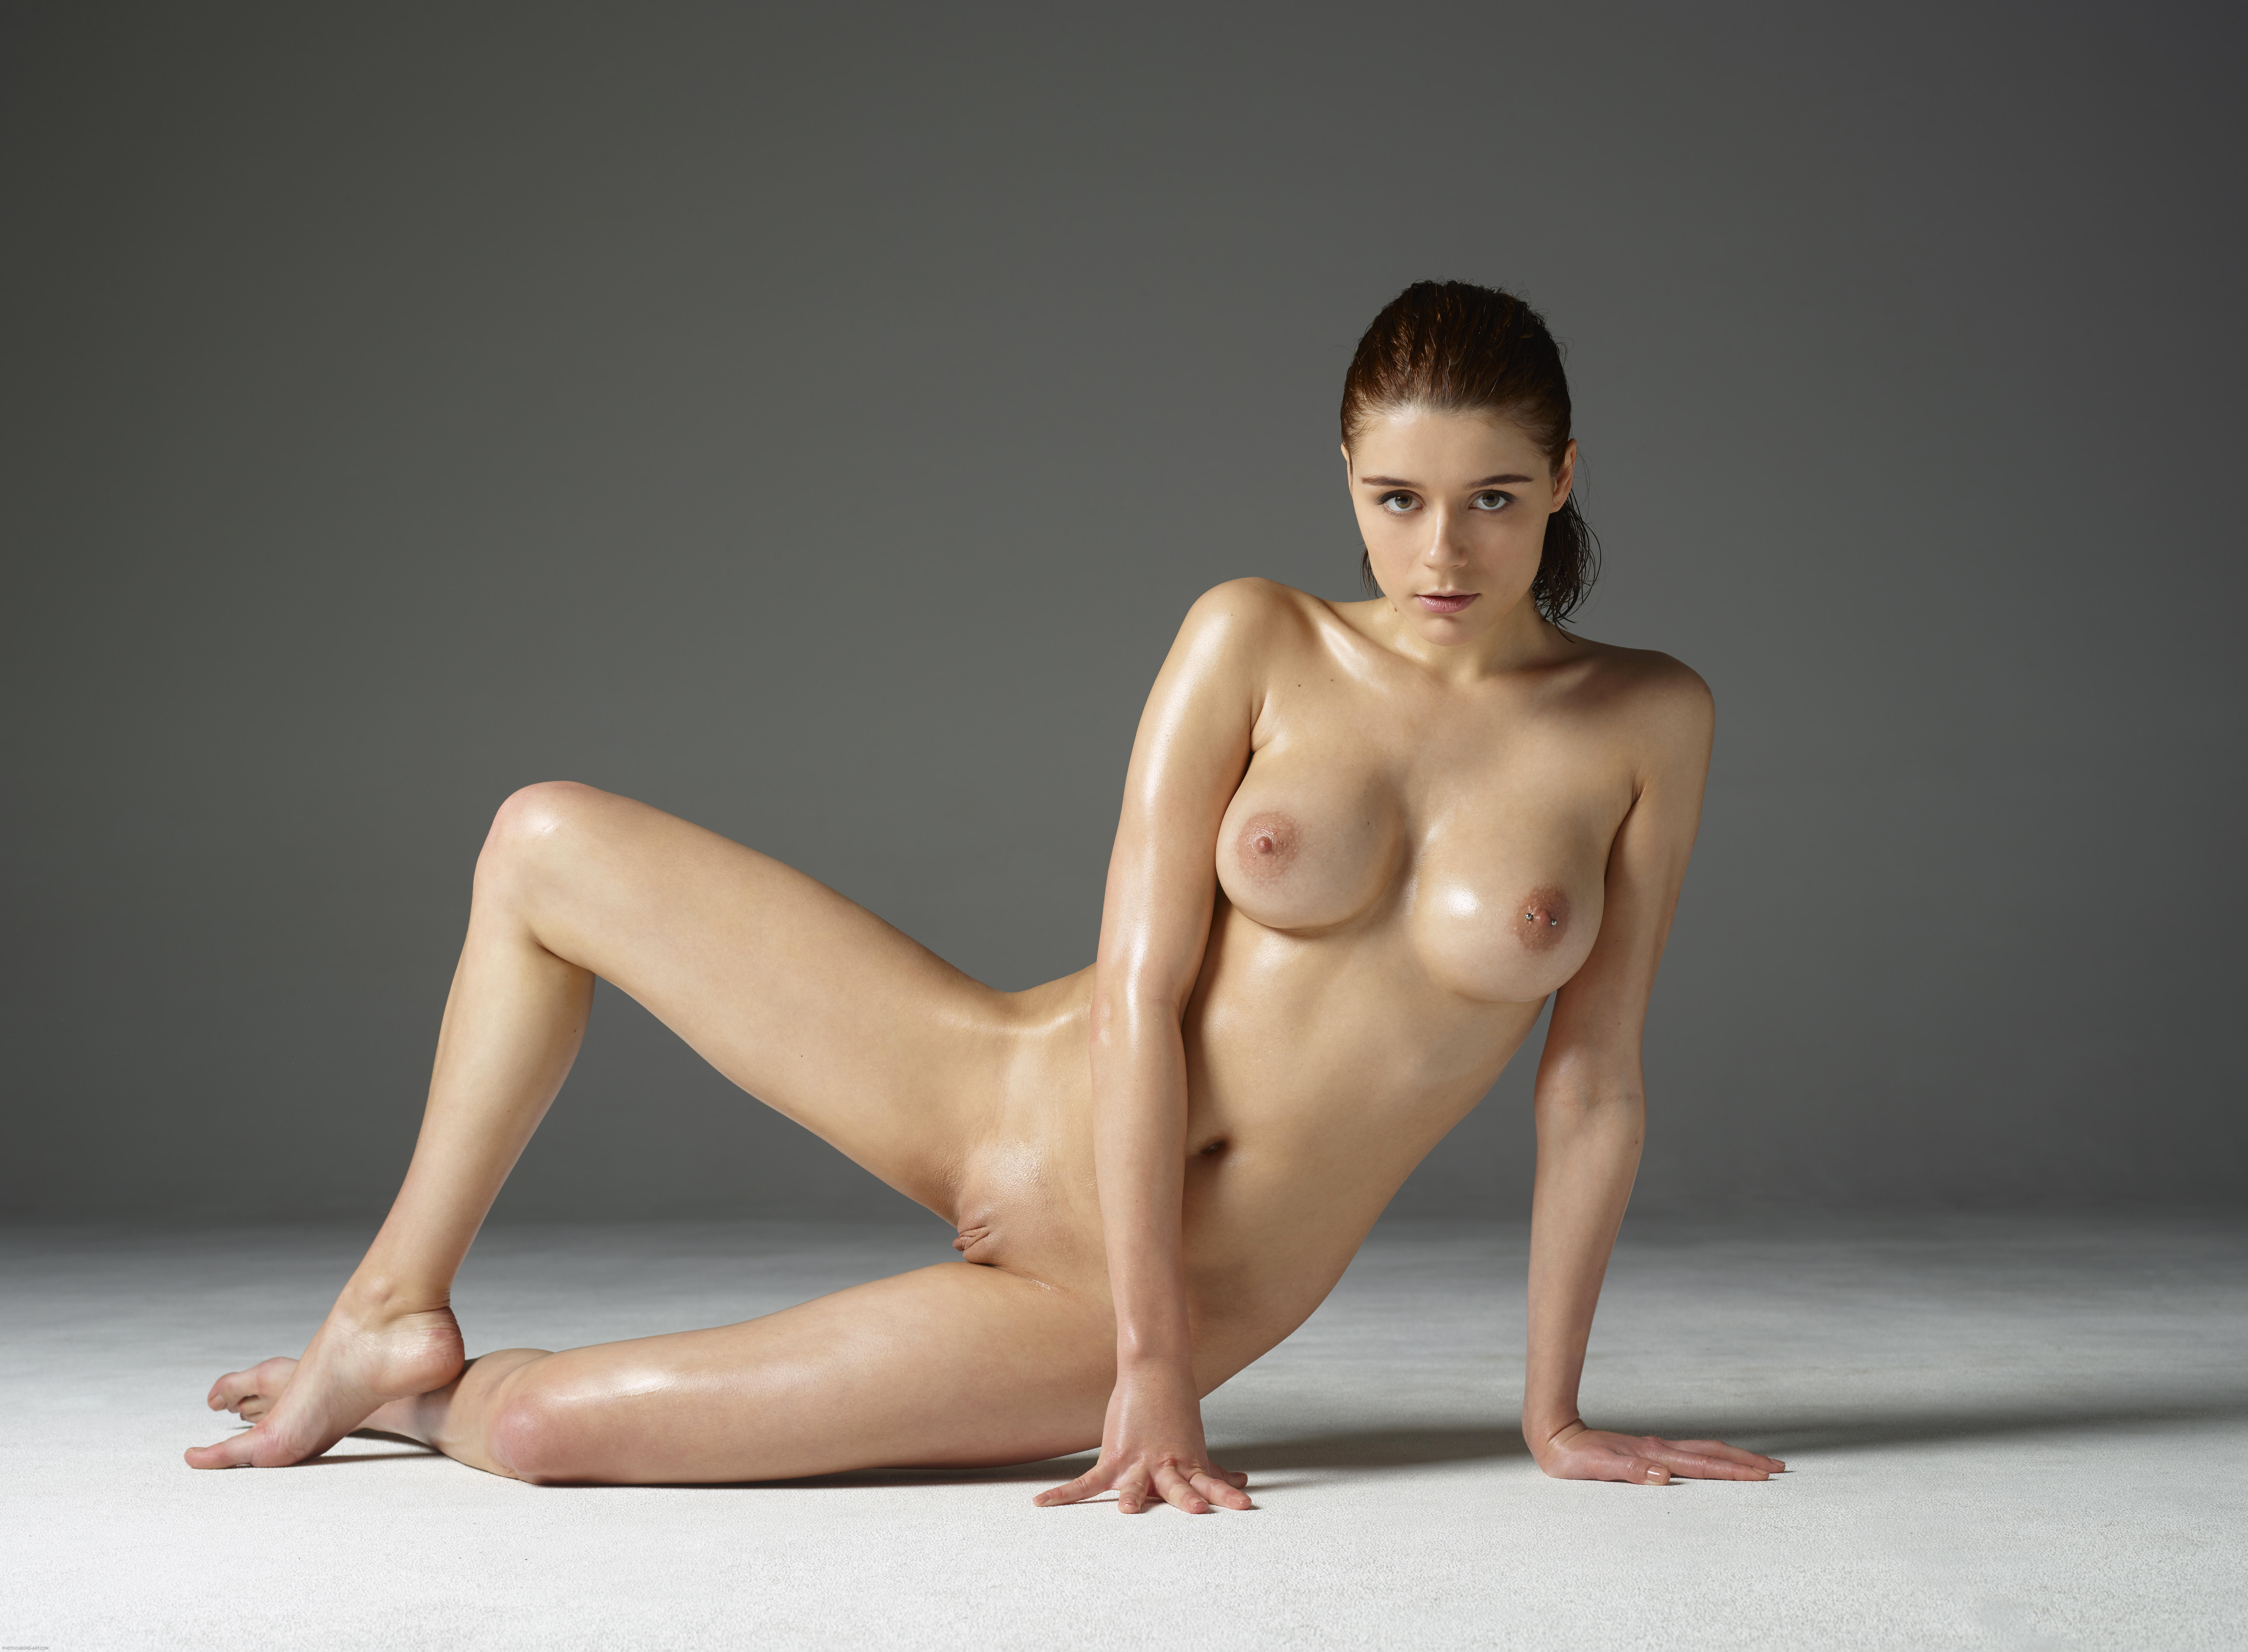 Naked fit women nude